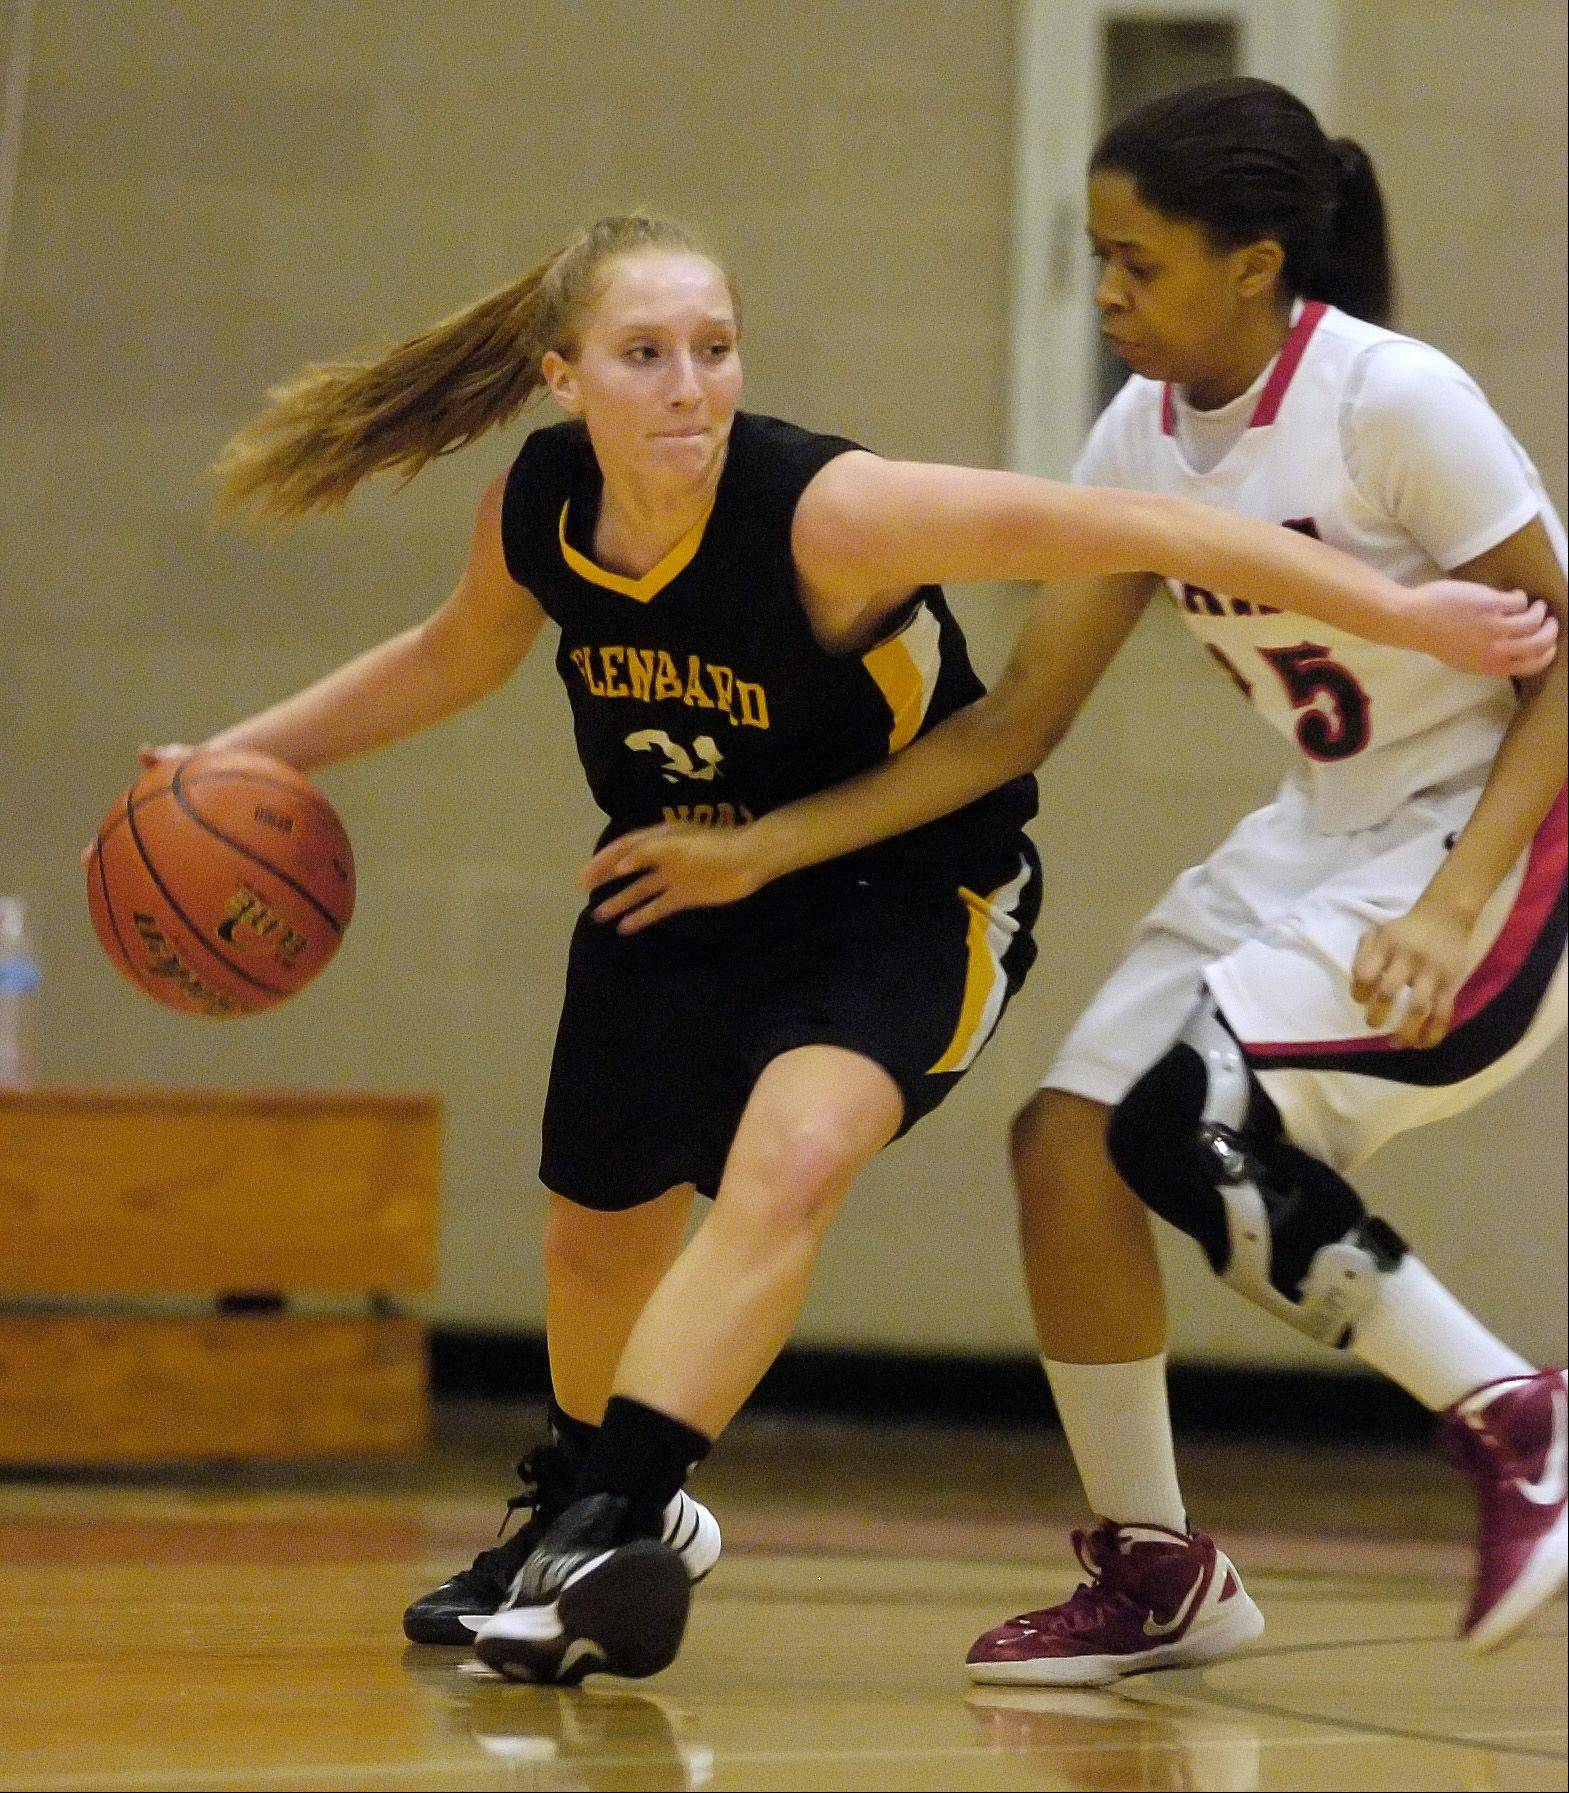 Amy Falson of Glenbard North works to get past Teaira Miller of Glenbard East during varsity girls basketball, Thursday in Lombard